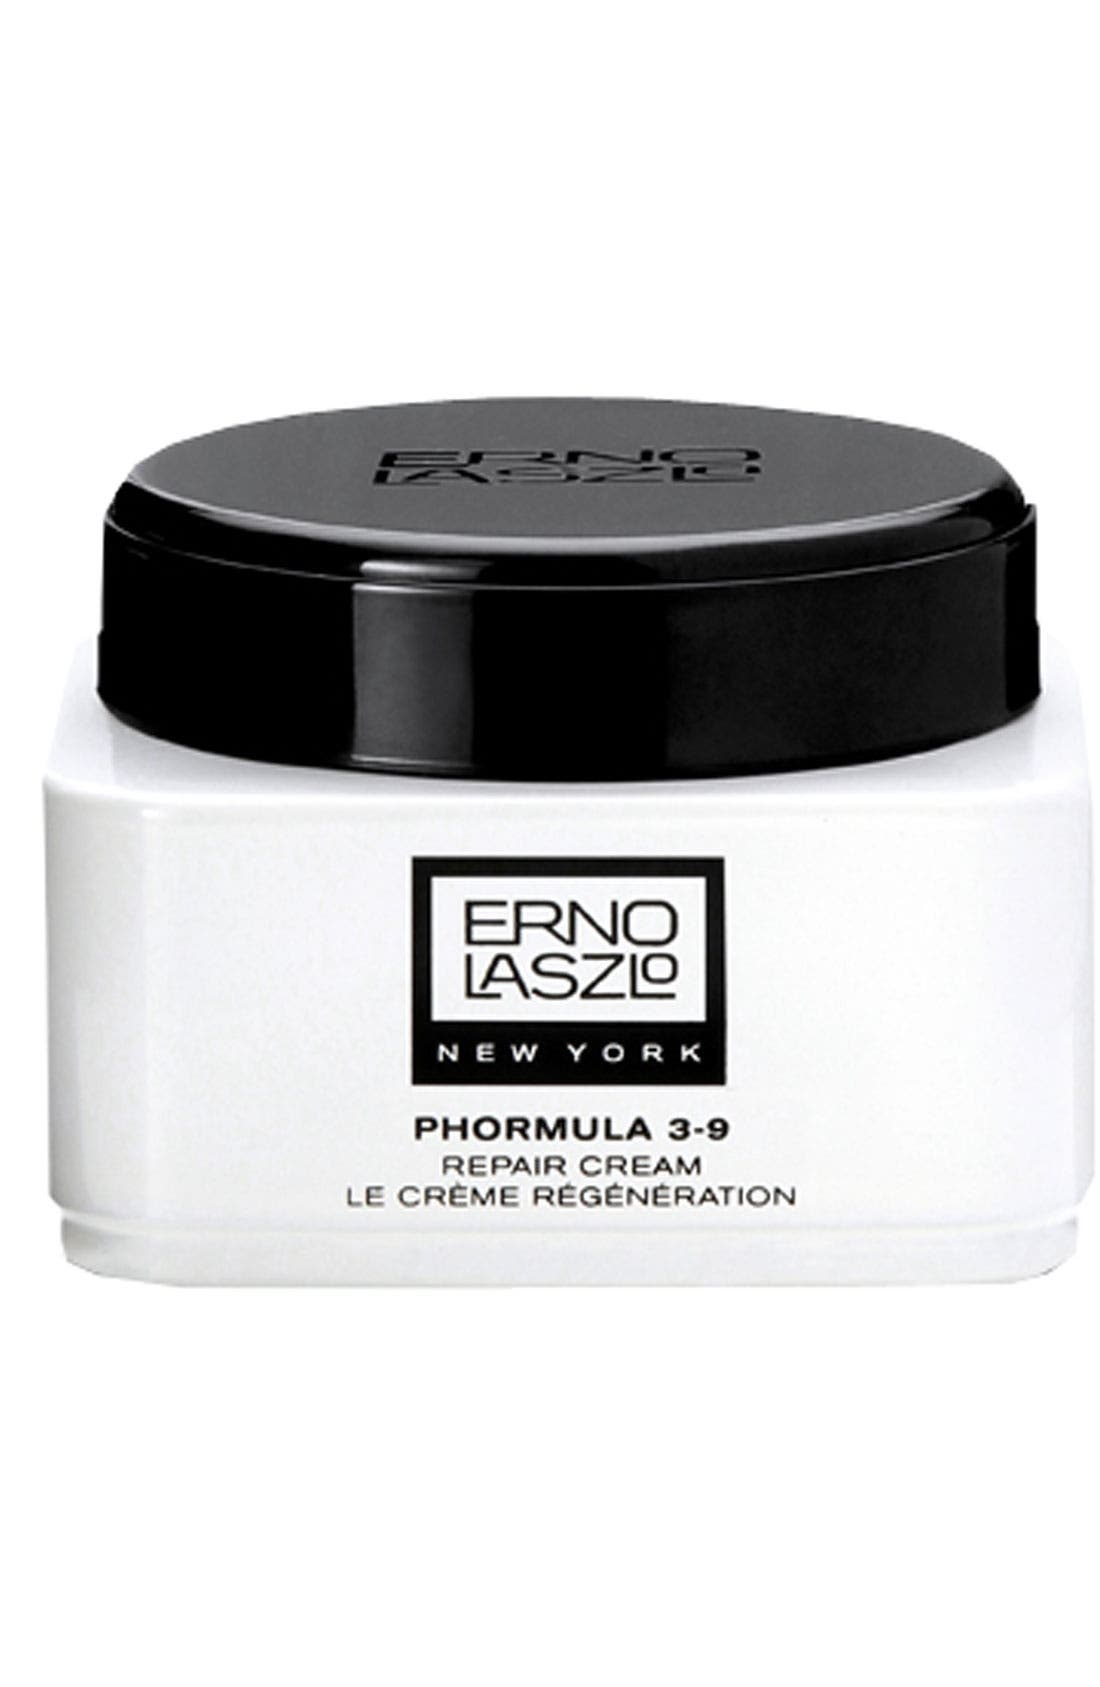 Erno Laszlo 'Phormula No. 3-9' Repair Cream